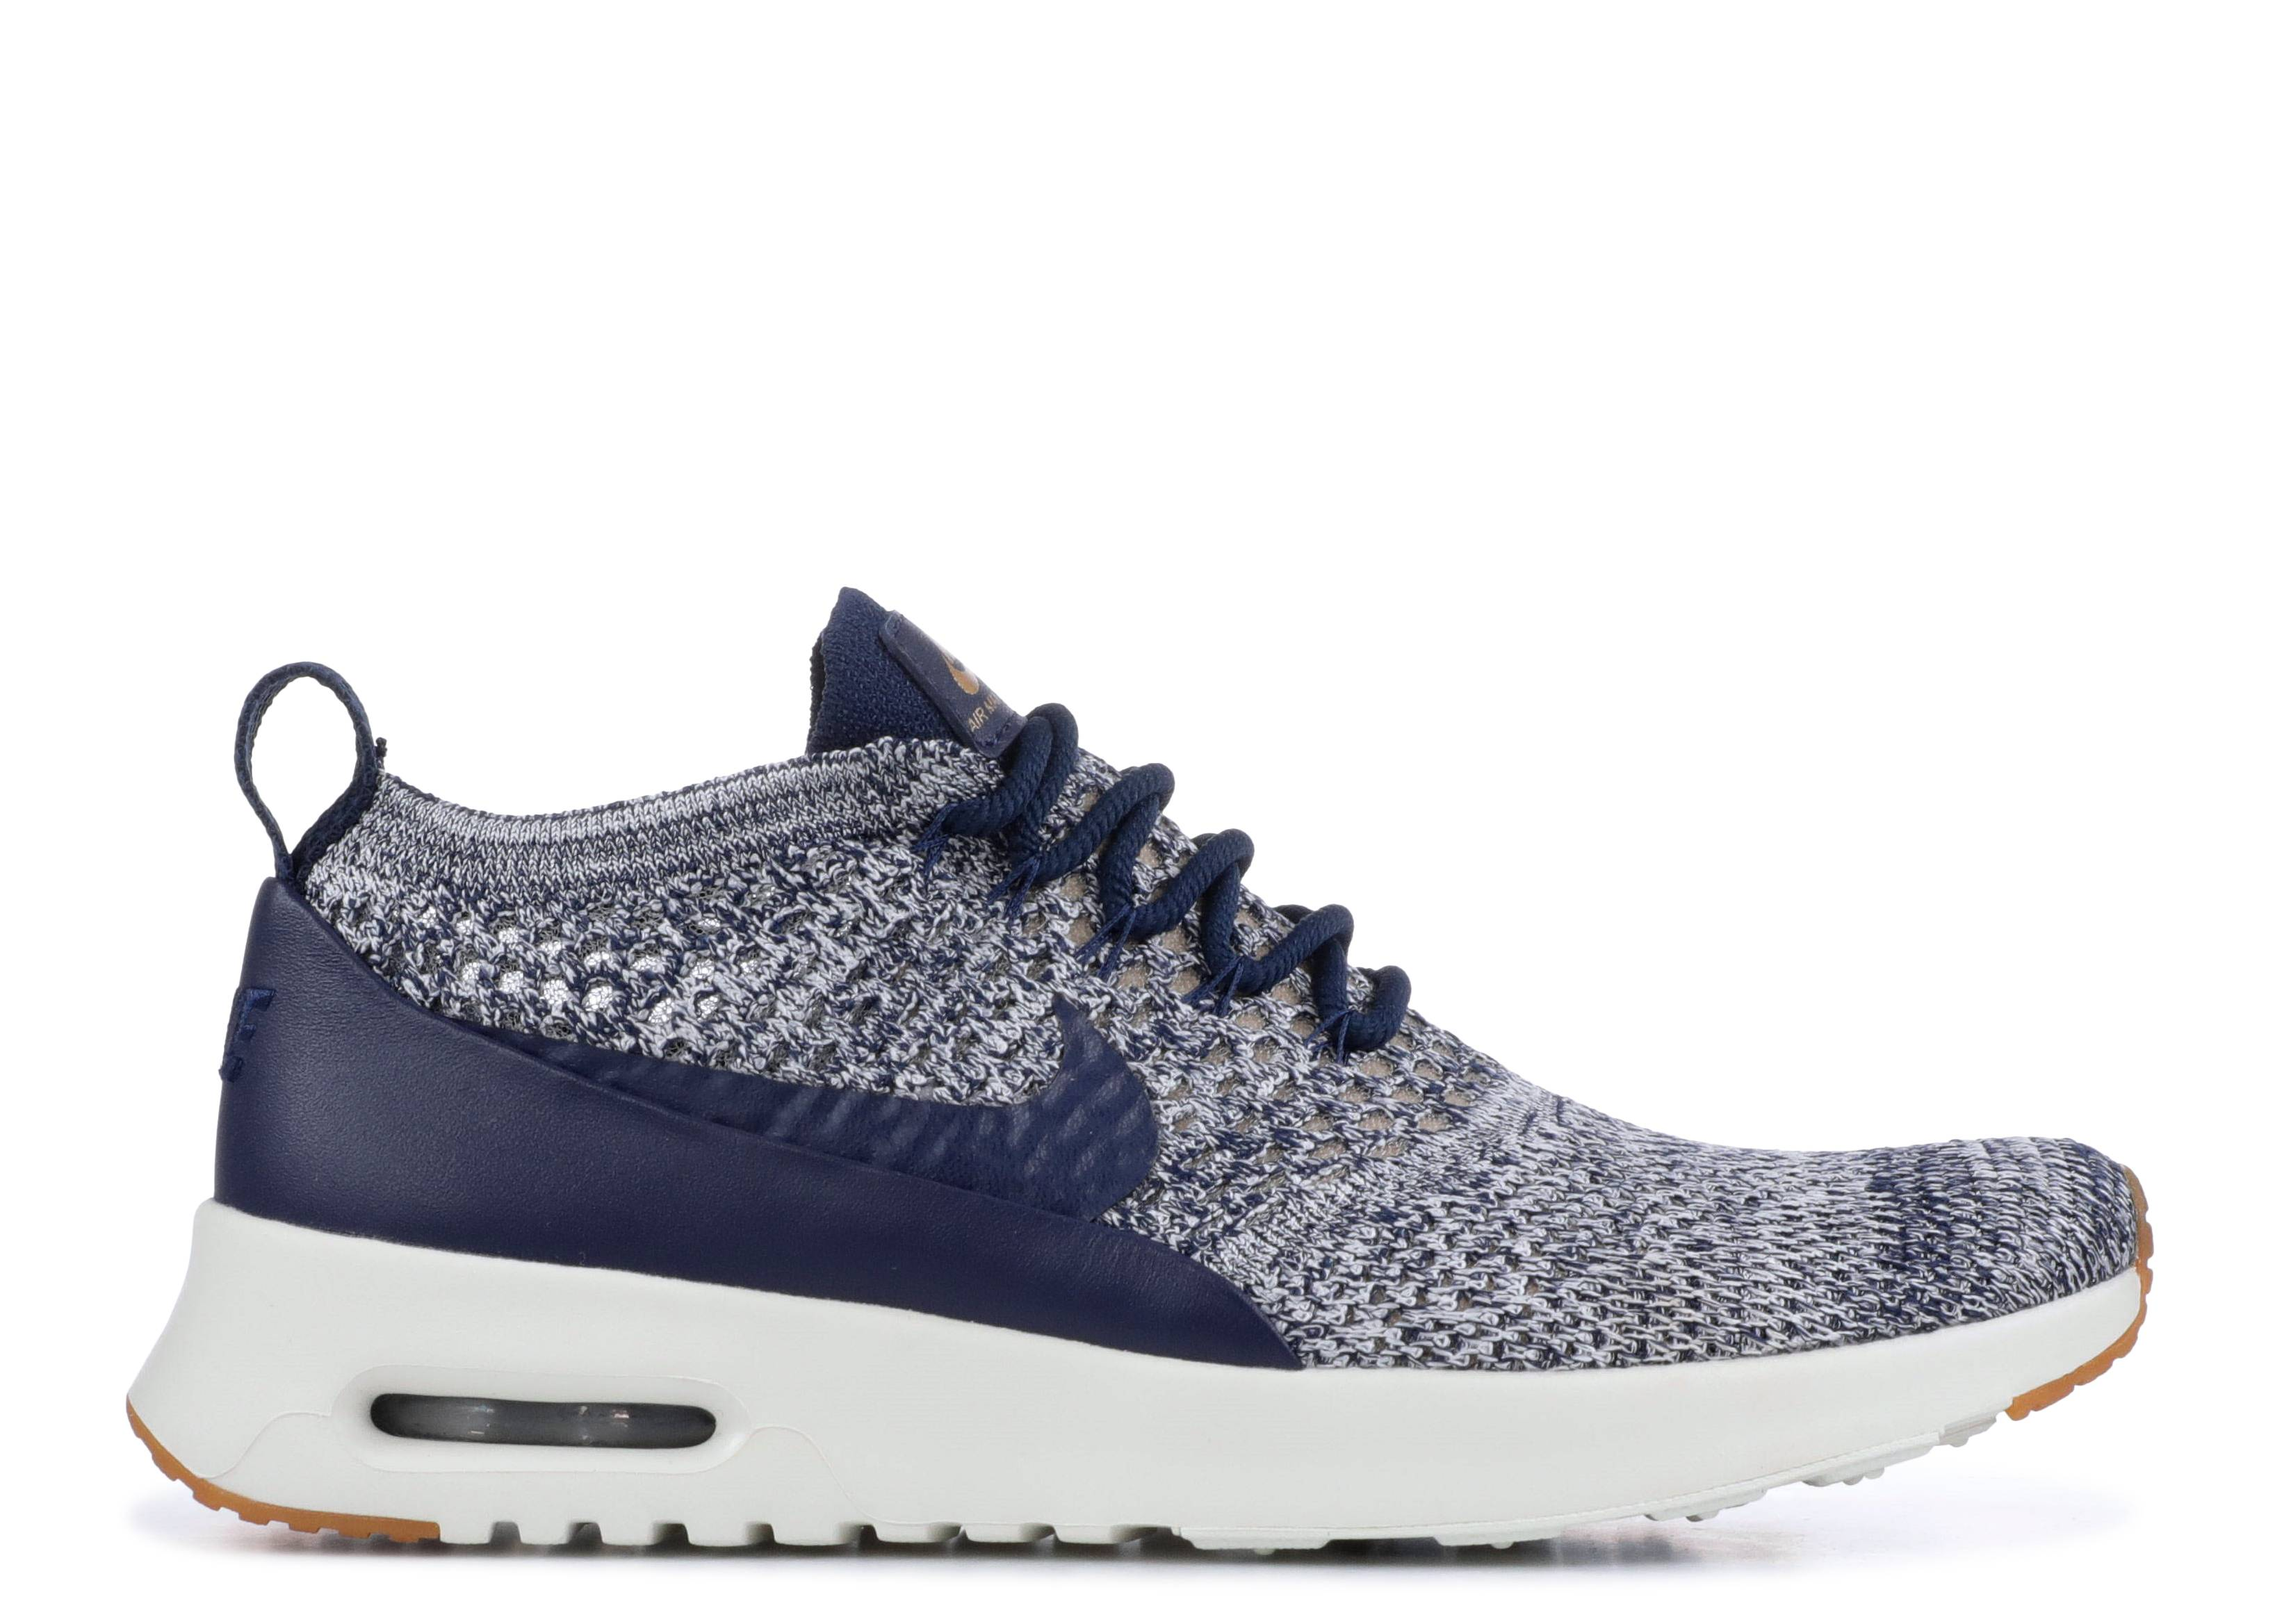 Wmns Air Max Thea Ultra Flyknit 'College Navy'